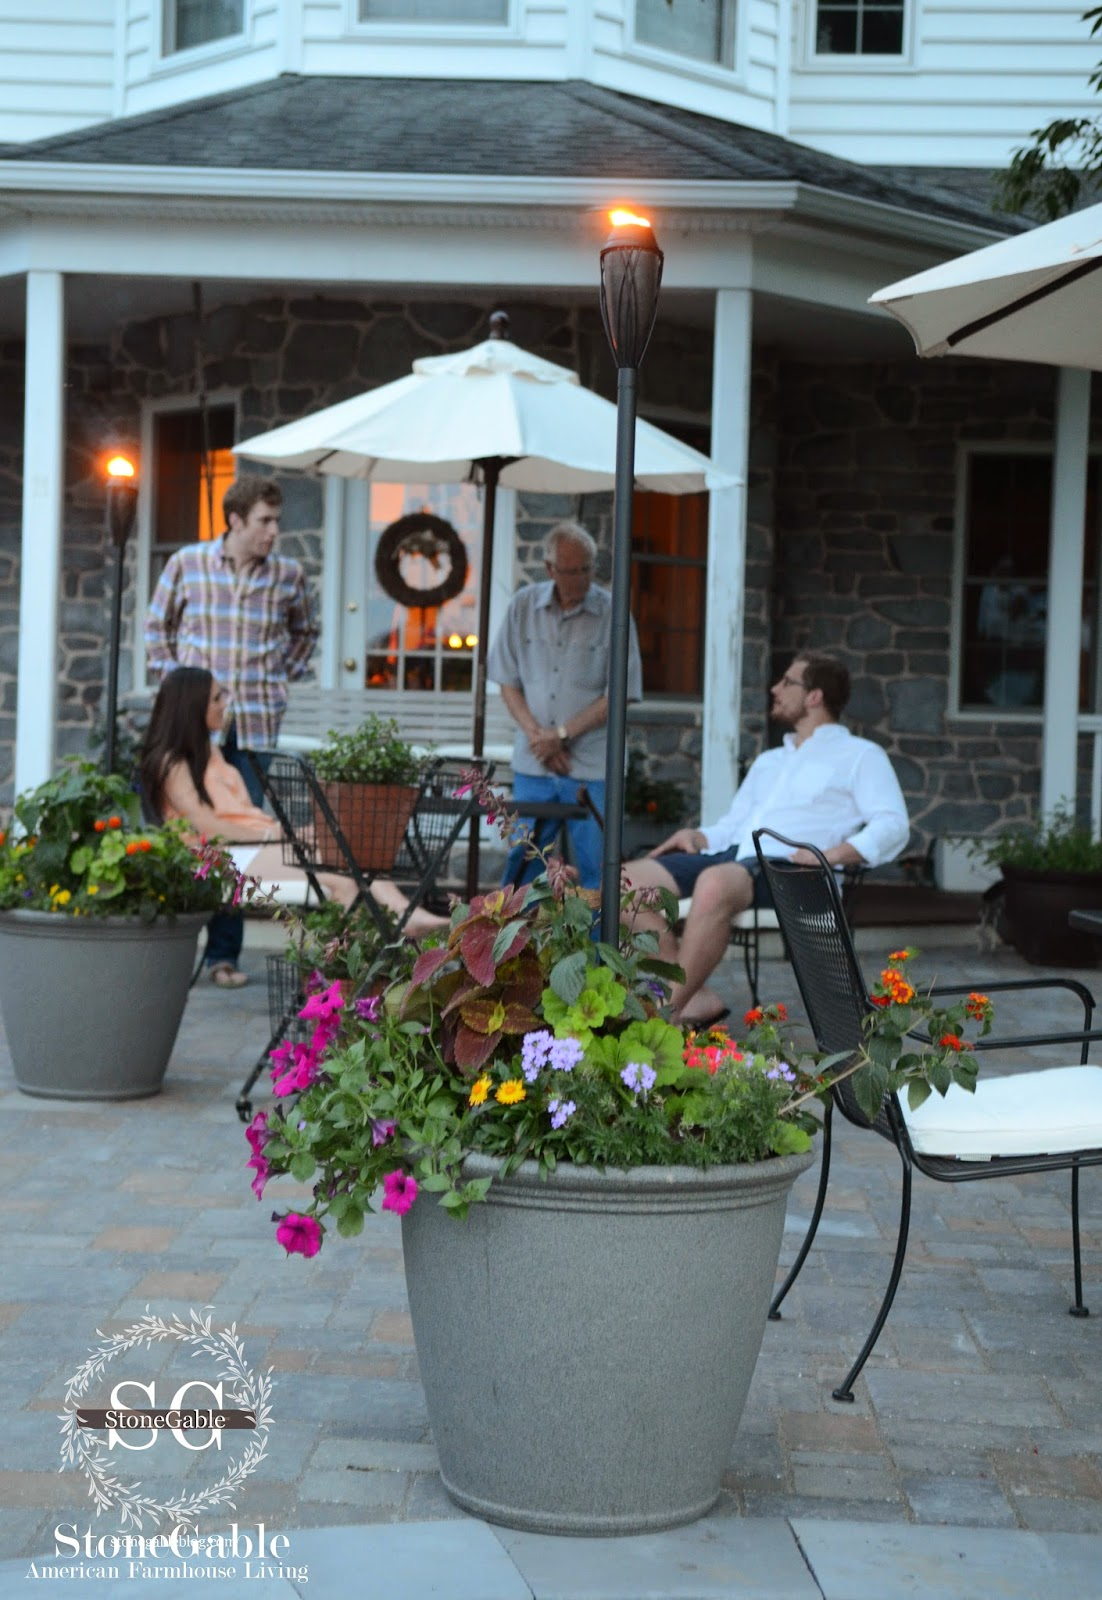 PATIO REVEAL AND GIVEAWAY - StoneGable on solar chandeliers, flickering solar torches, solar plants, solar ice chest, solar products, solar wind chimes, solar tiki lamps, solar island torches, solar pools, solar outdoor shower, solar boilers, solar bikes, solar torches flicker flame, solar stoves, solar twinkle lights, solar flashlights, solar flickering tiki lights, solar tiki masks,